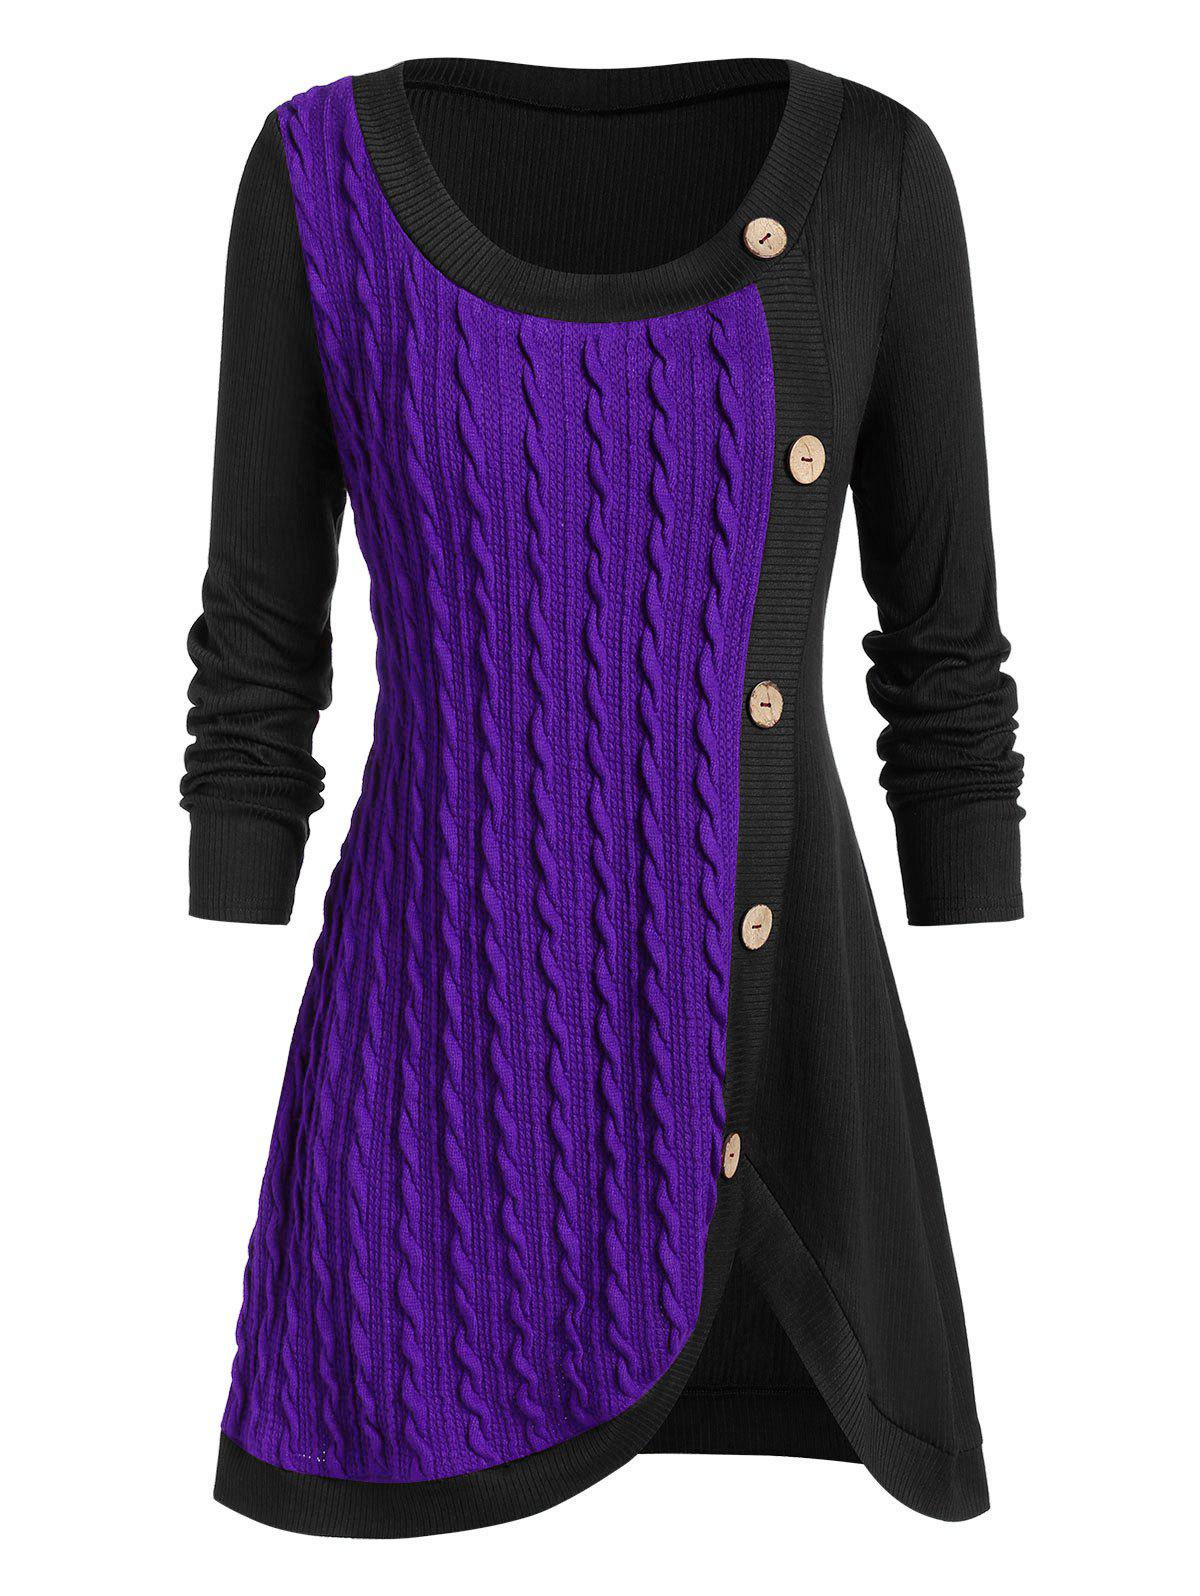 Plus Size Buttoned Front Slit Cable Knit Sweater - PURPLE AMETHYST 4X